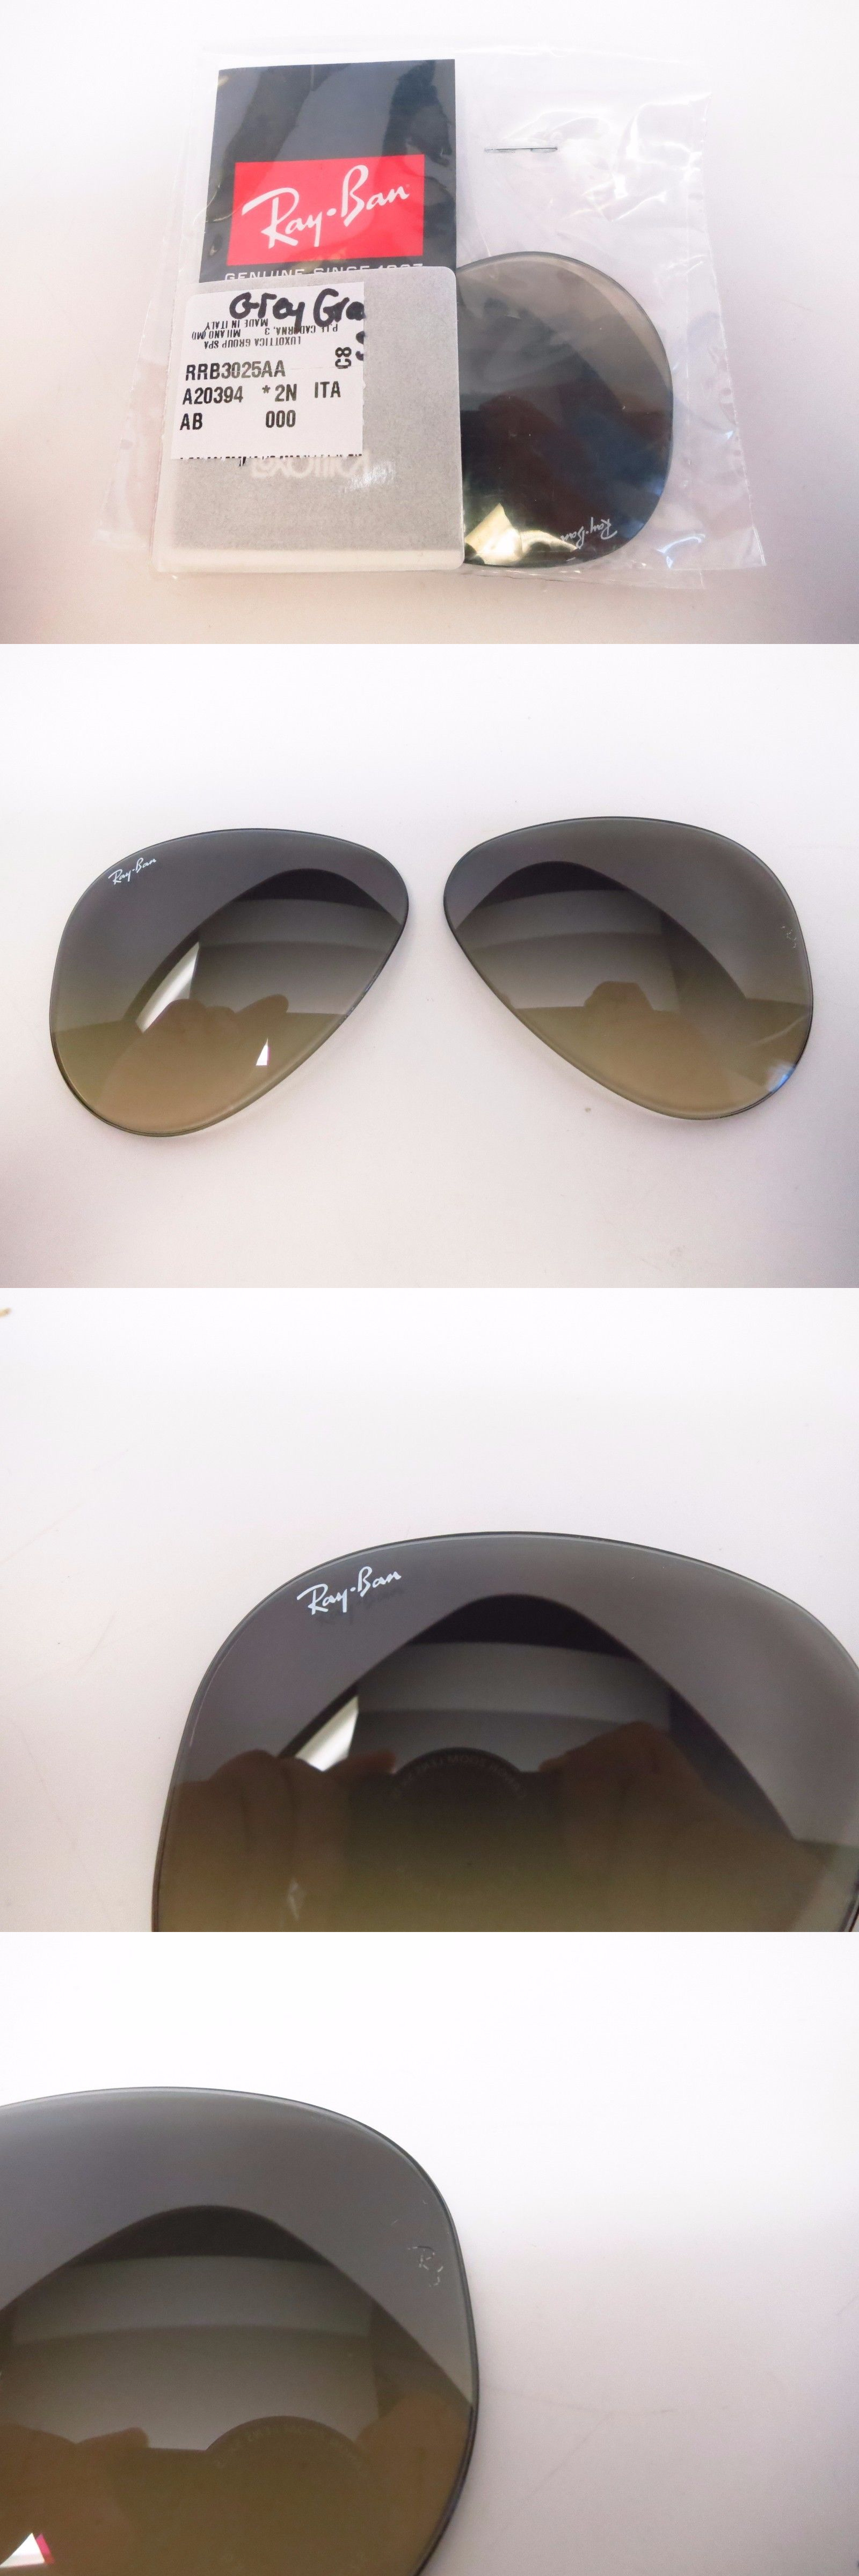 1e0b3b9207 Sunglass Lens Replacements 179195: Ray-Ban Rb 3025 Aviator Grey Gradient  Sunglass Replacement Lenses 58Mm -> BUY IT NOW ONLY: $40 on eBay!